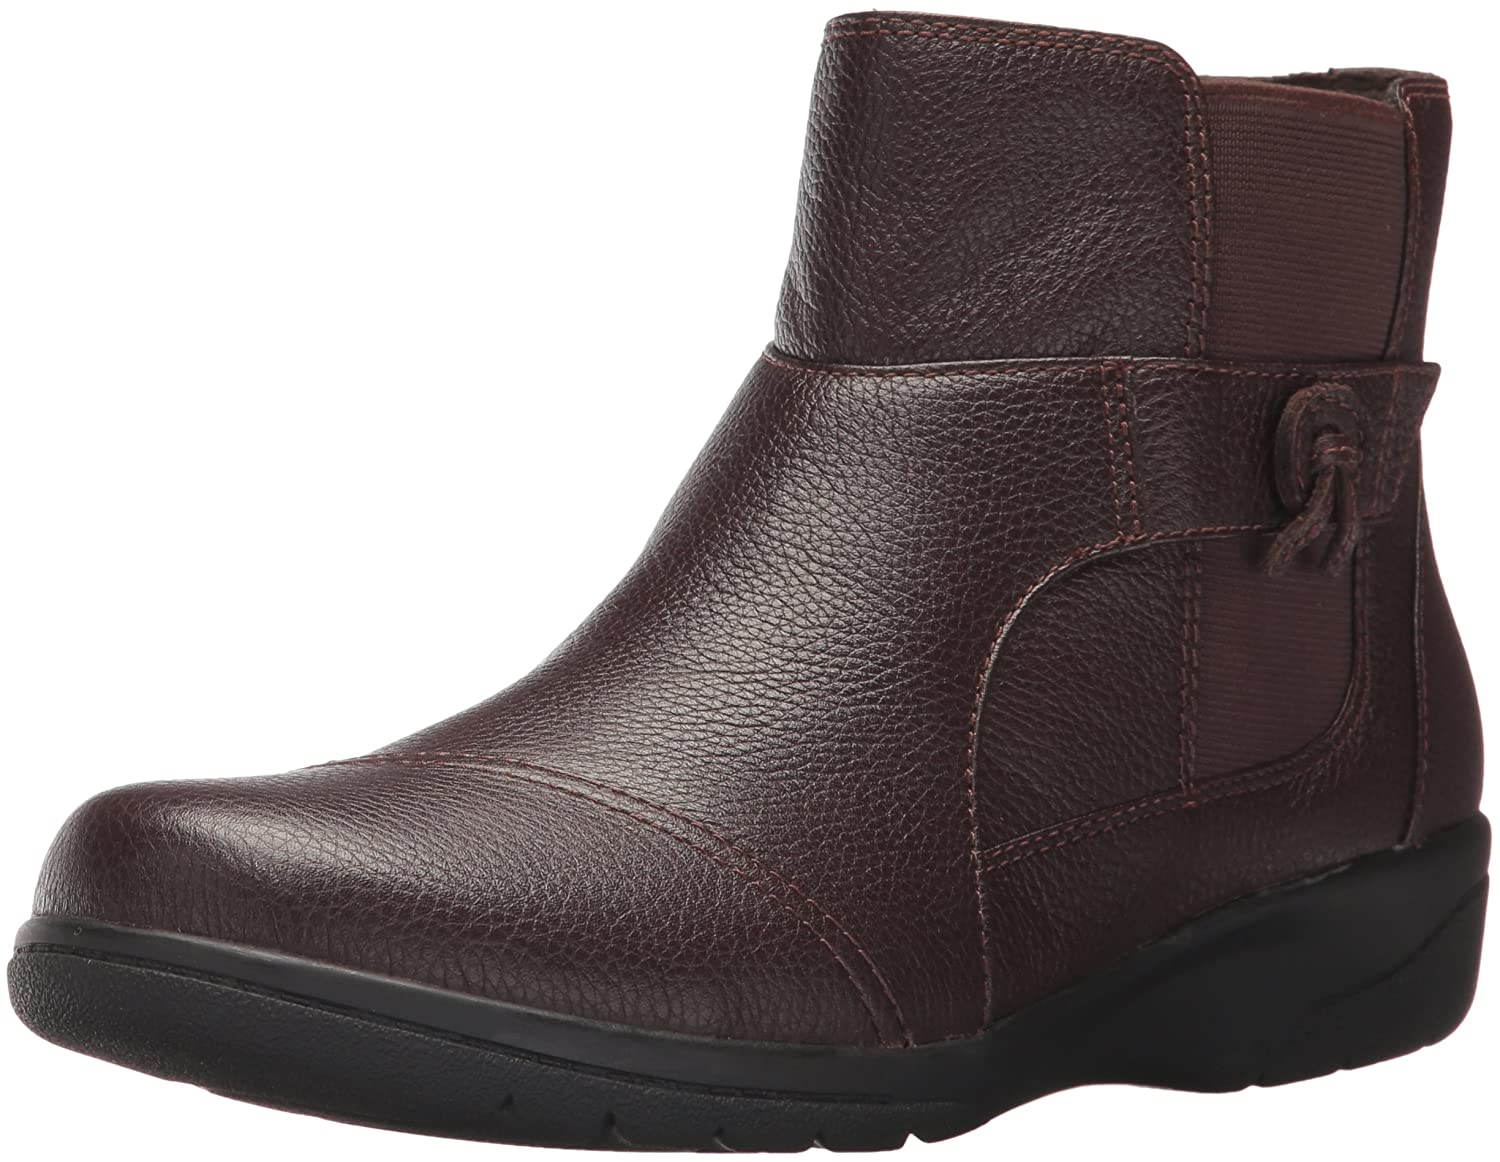 CLARKS Women's Cheyn Work Ankle Bootie B01MTZ1HXH 9.5 B(M) US|Dark Brown Leather